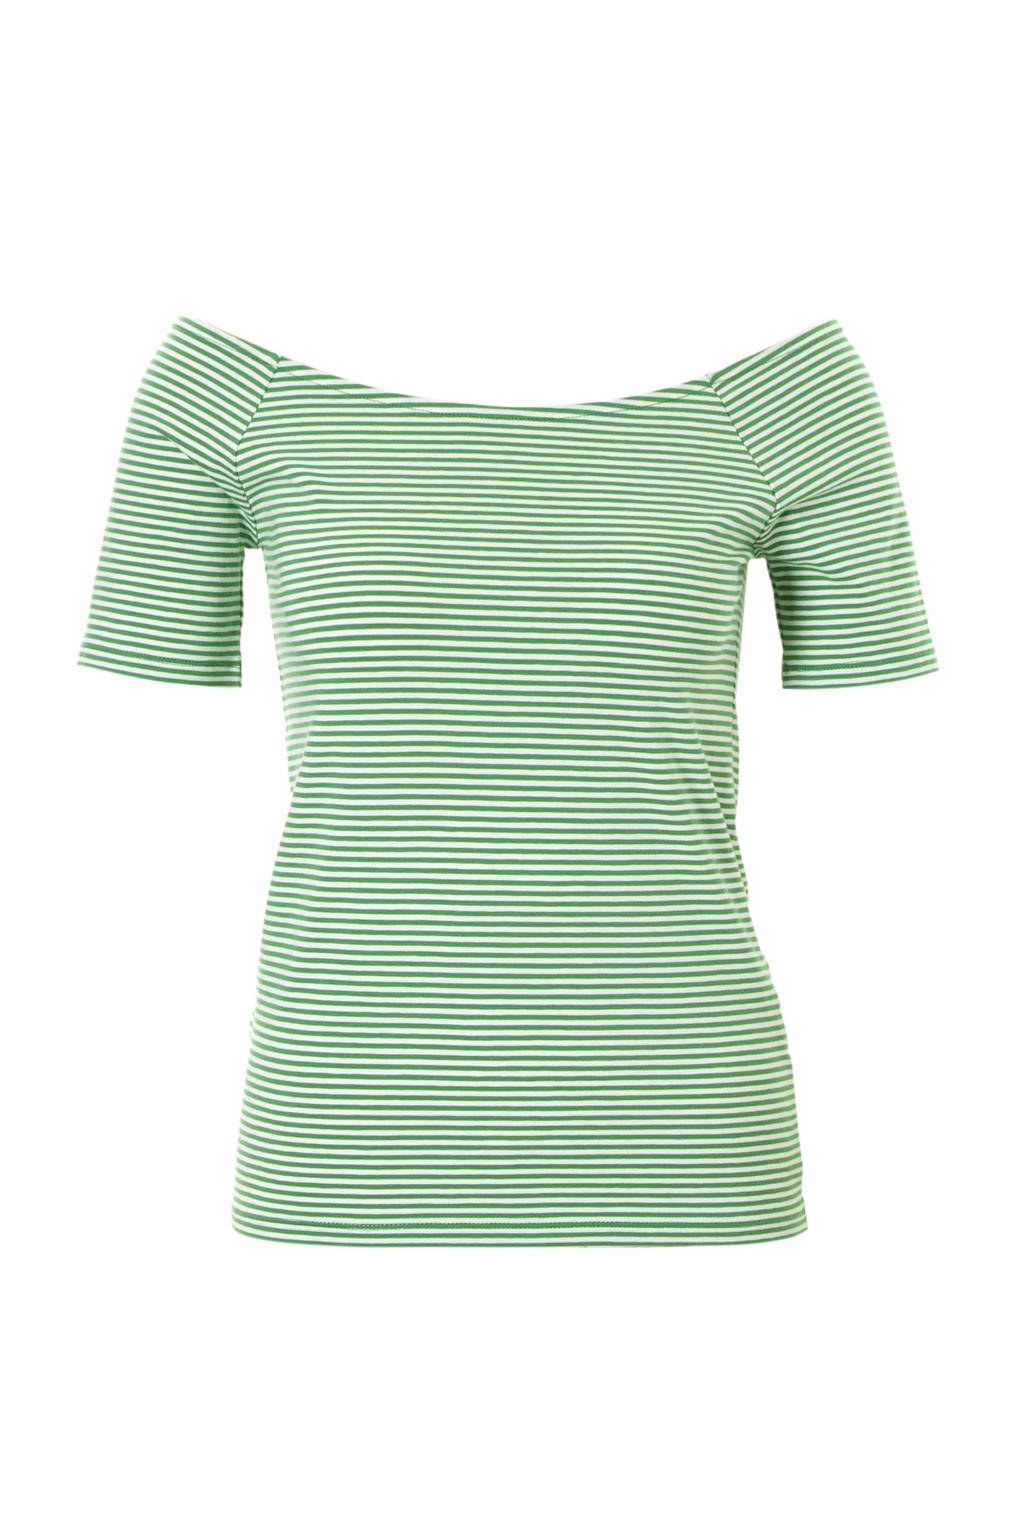 edc Women gestreepte off shoulder top groen, Groen